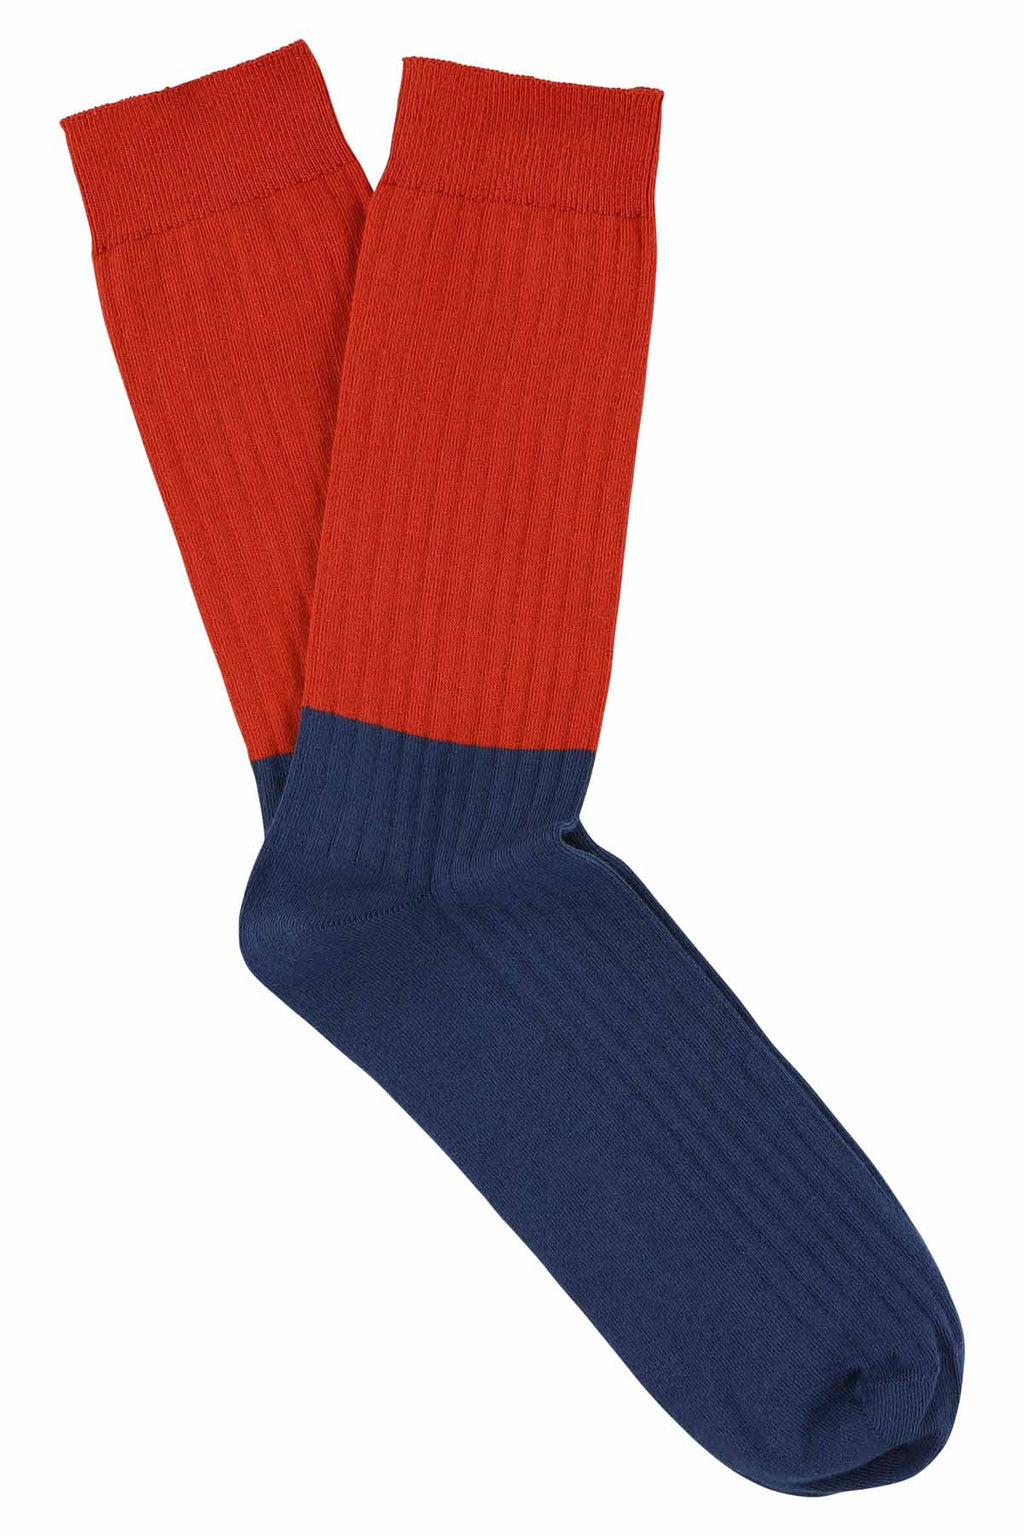 Escuyer socks -  Colour Block Pureed Pumpkin / Blue Wing Teal